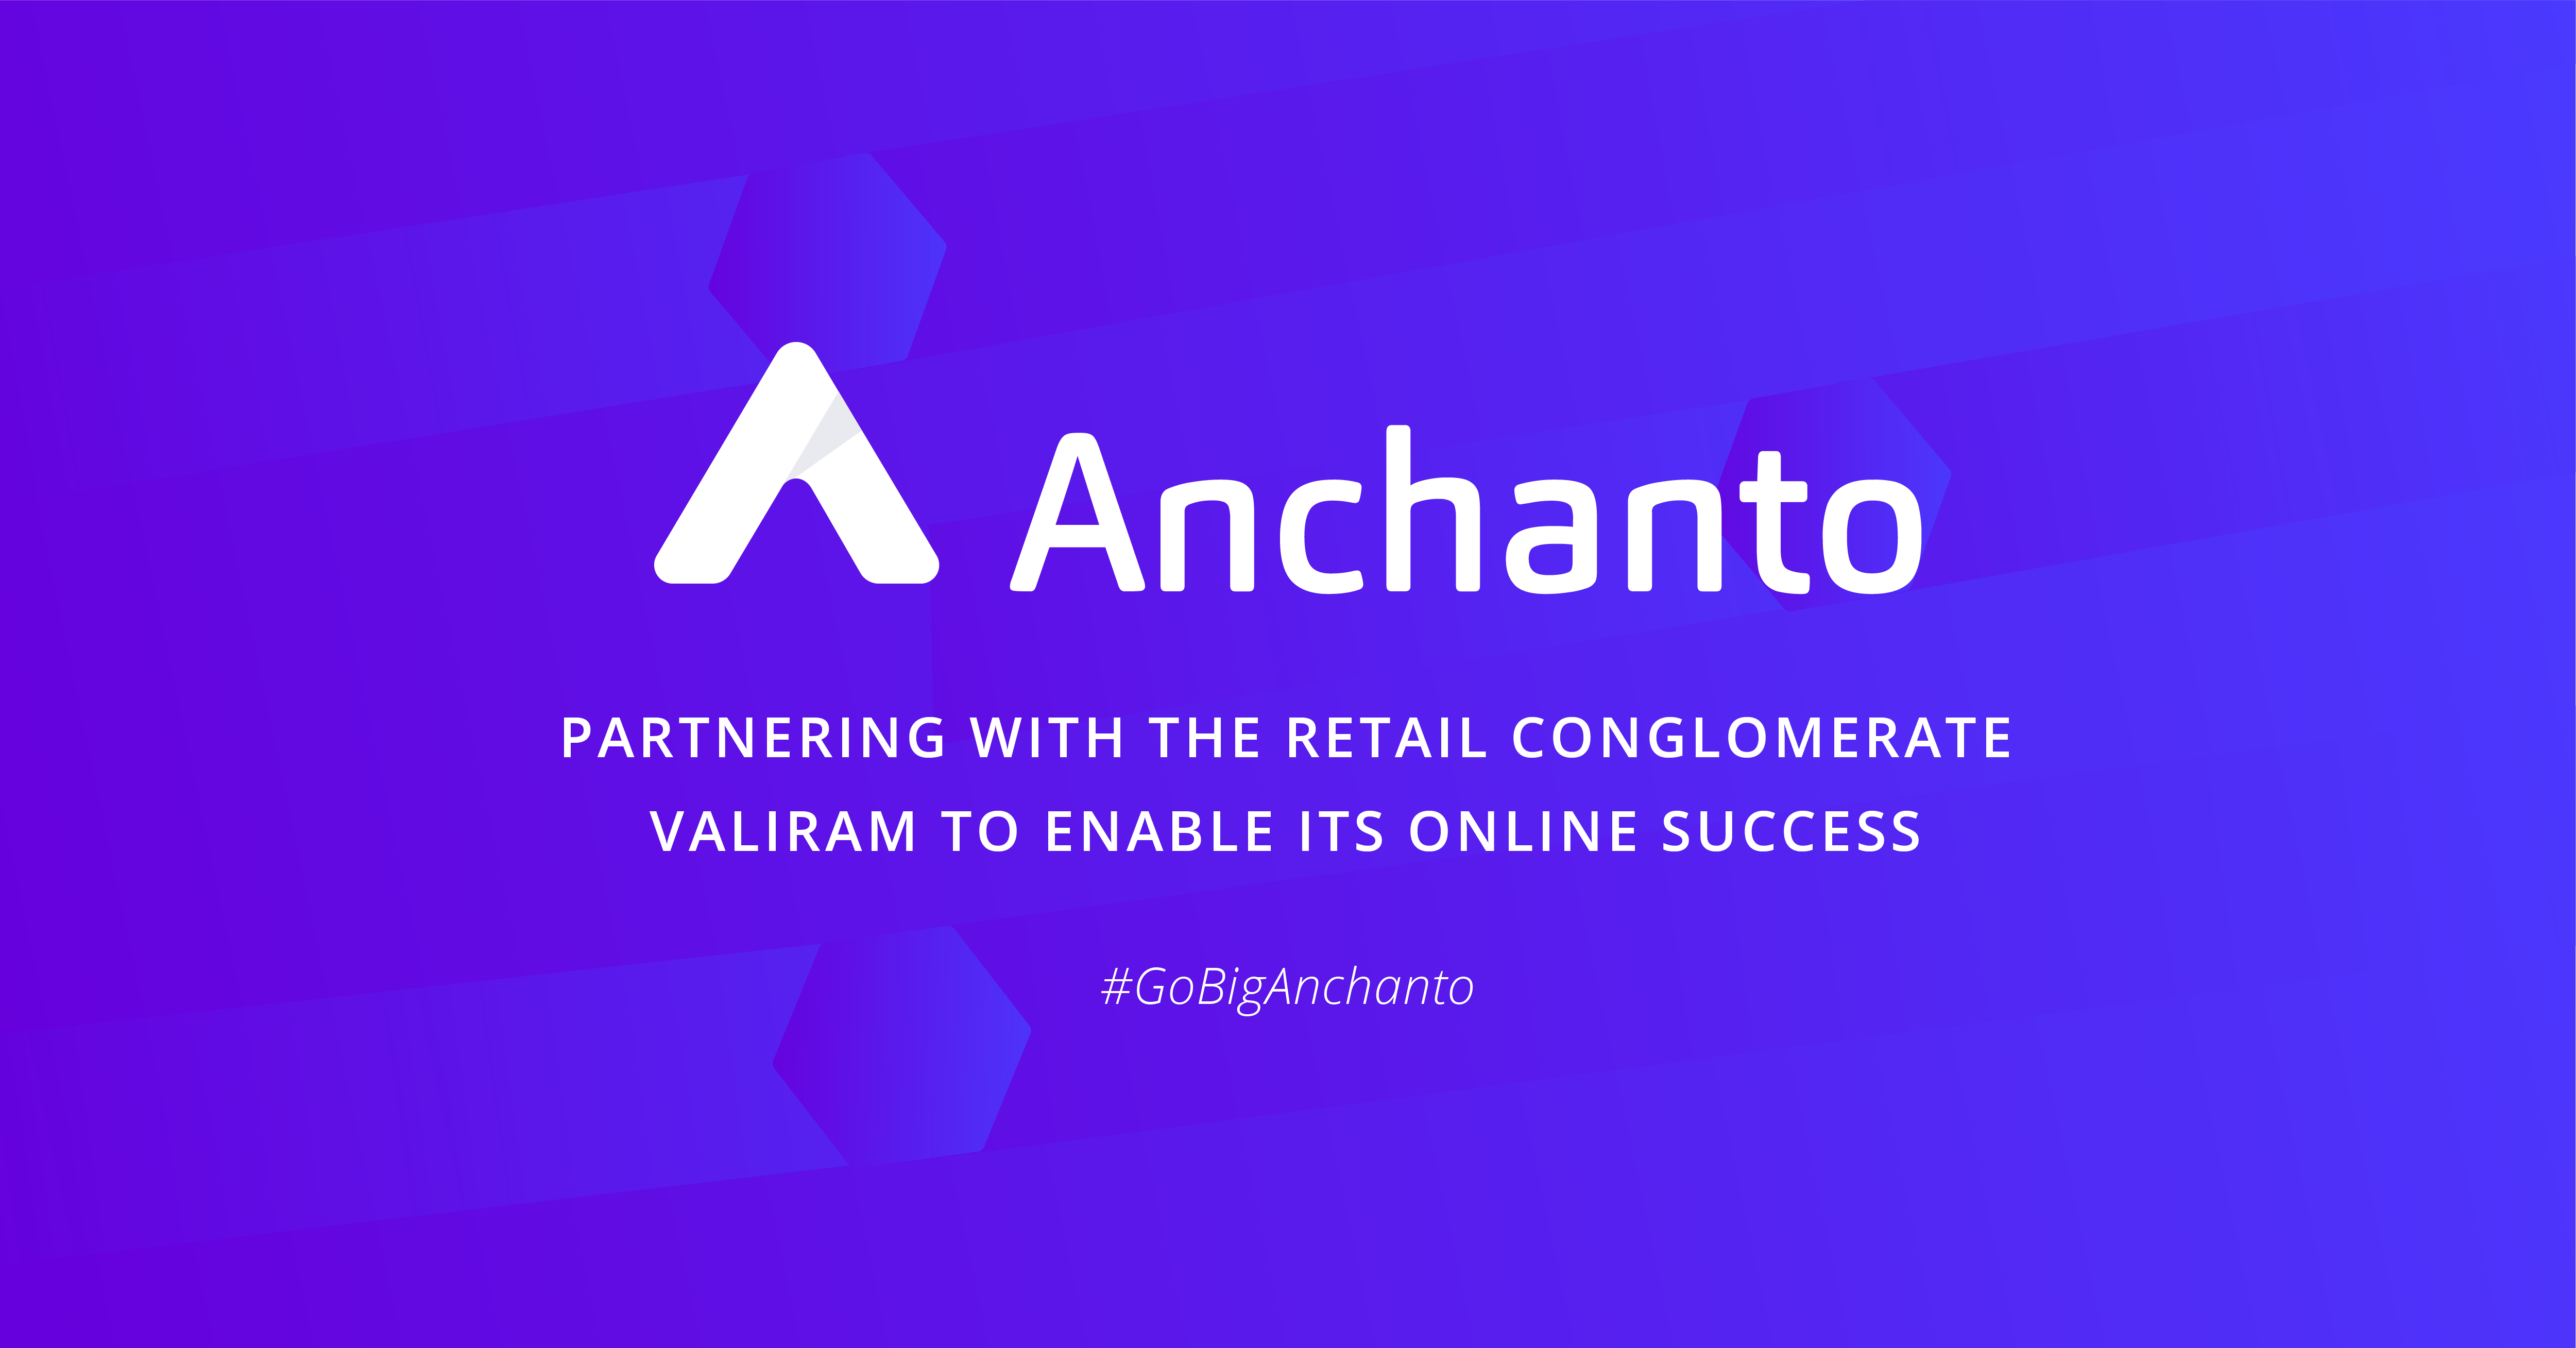 retail_distribution_giant_Valiram_selects_Anchanto_to_accelerate_its_global_eCommerce_transformation